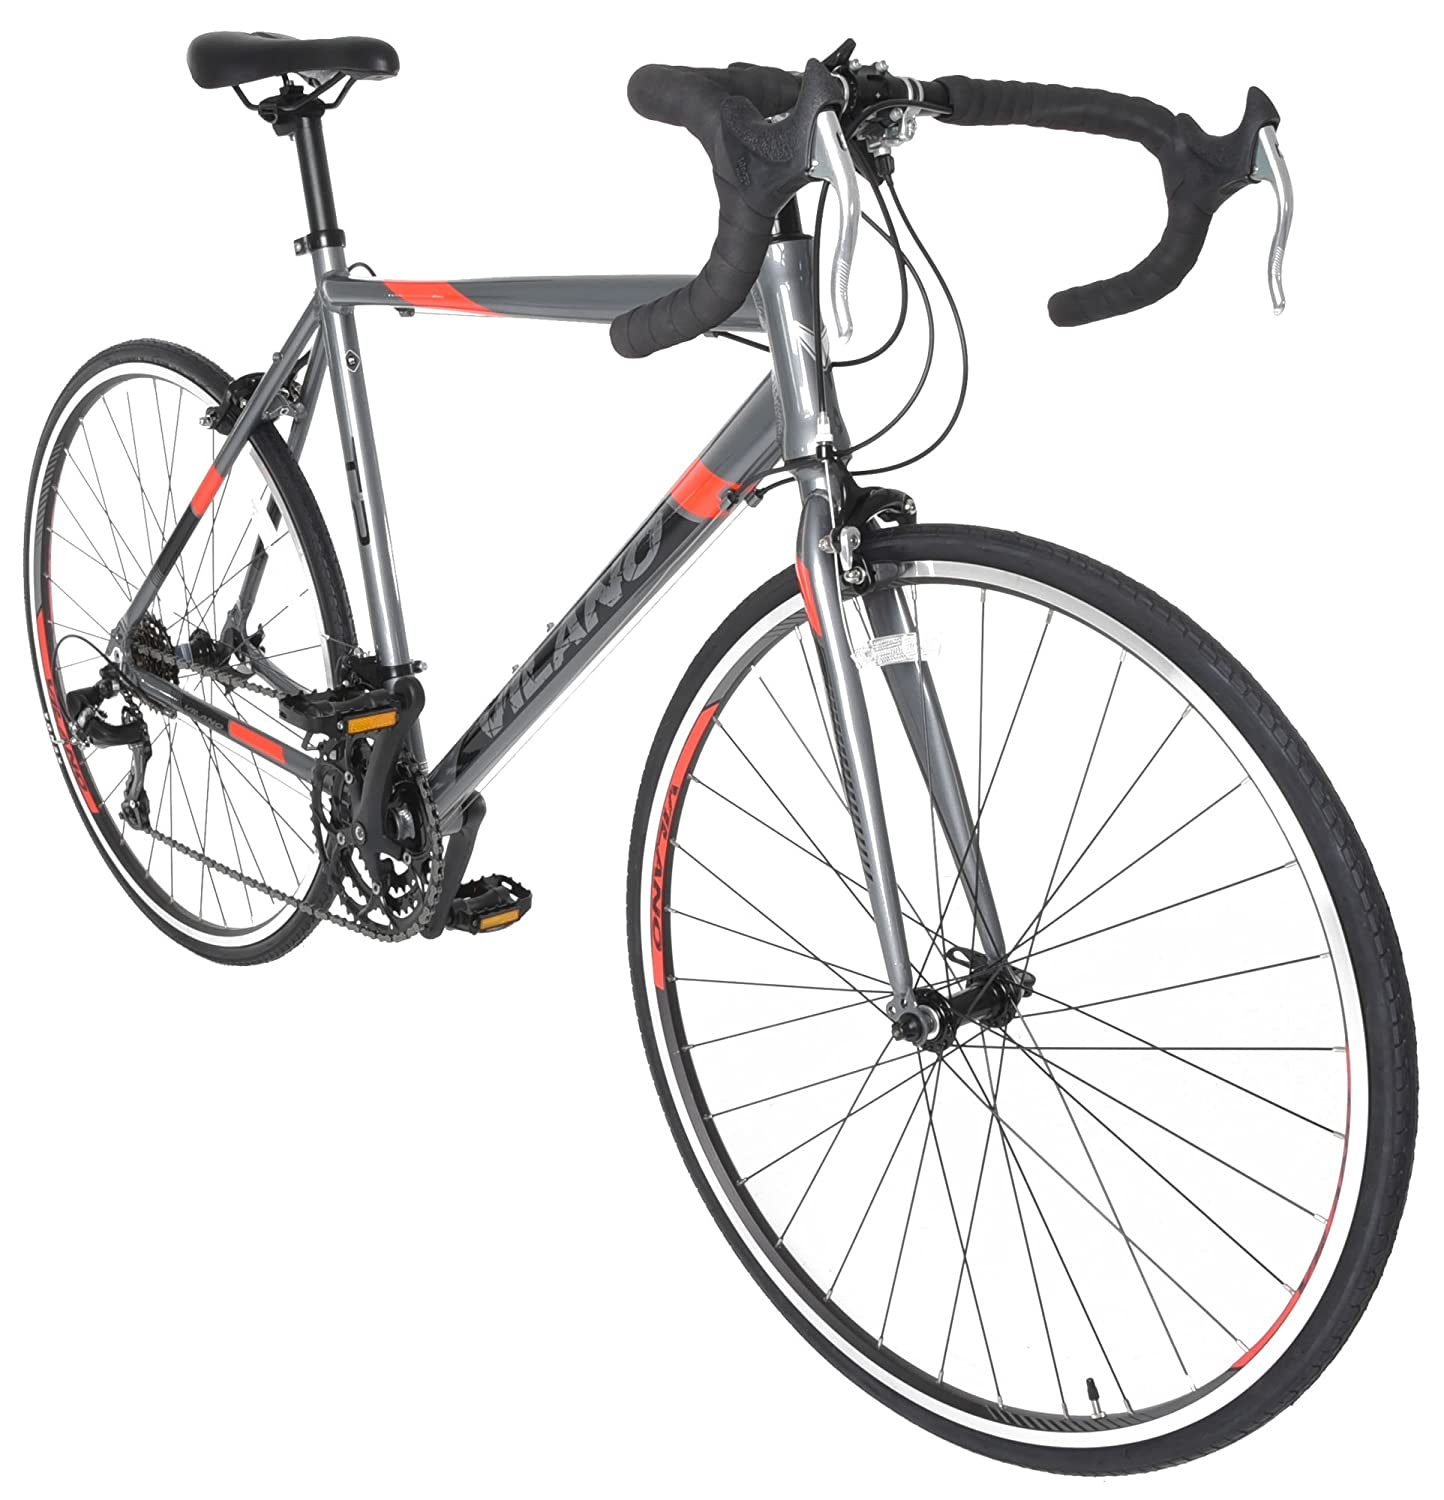 Vilano Tuono 2.0 Aluminum Road Bike Best Touring Bikes Under $500